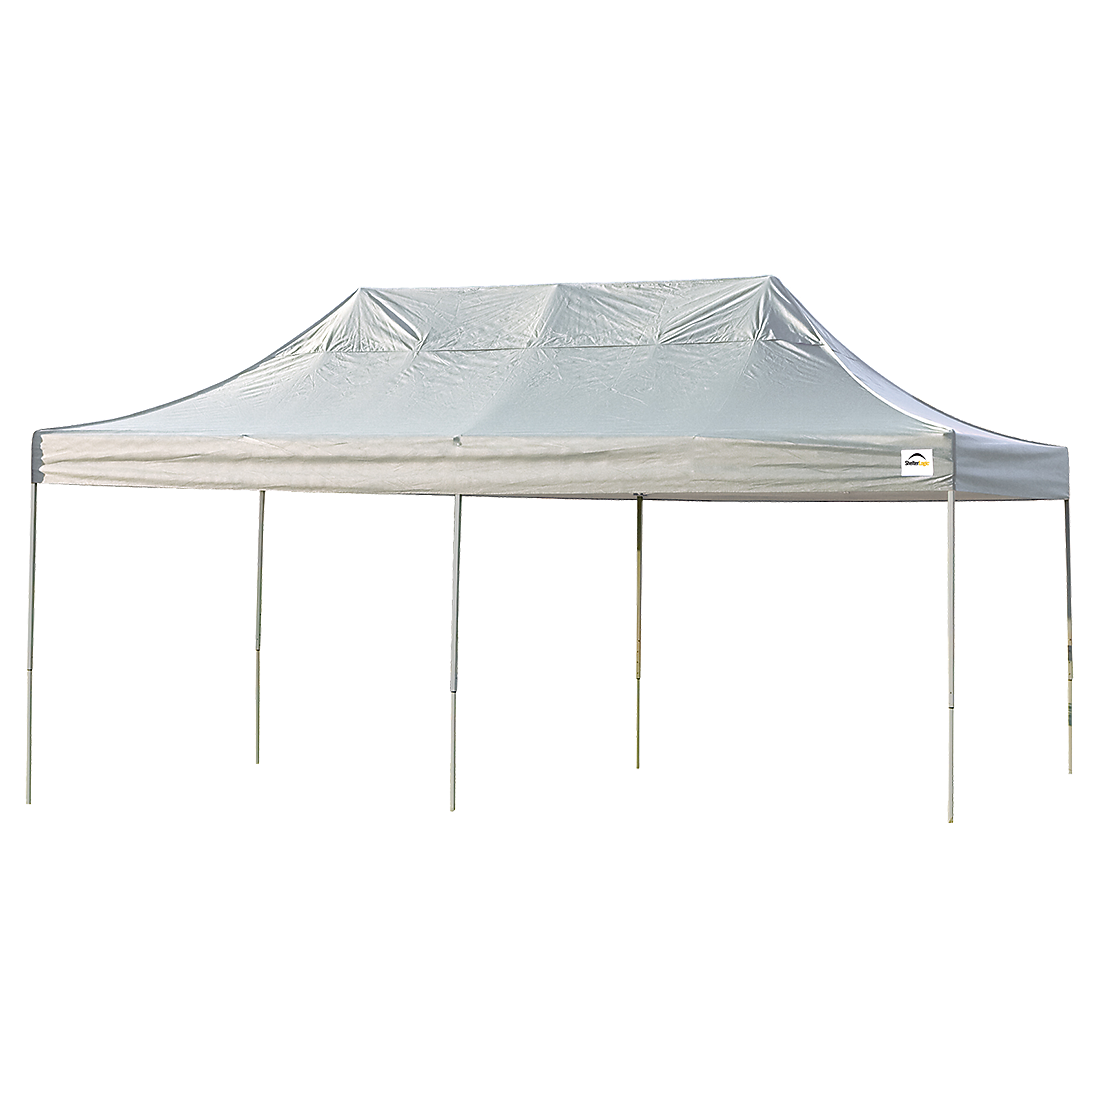 popup canopy hd straight leg 10 x 20 ft zoom - 10x20 Pop Up Canopy